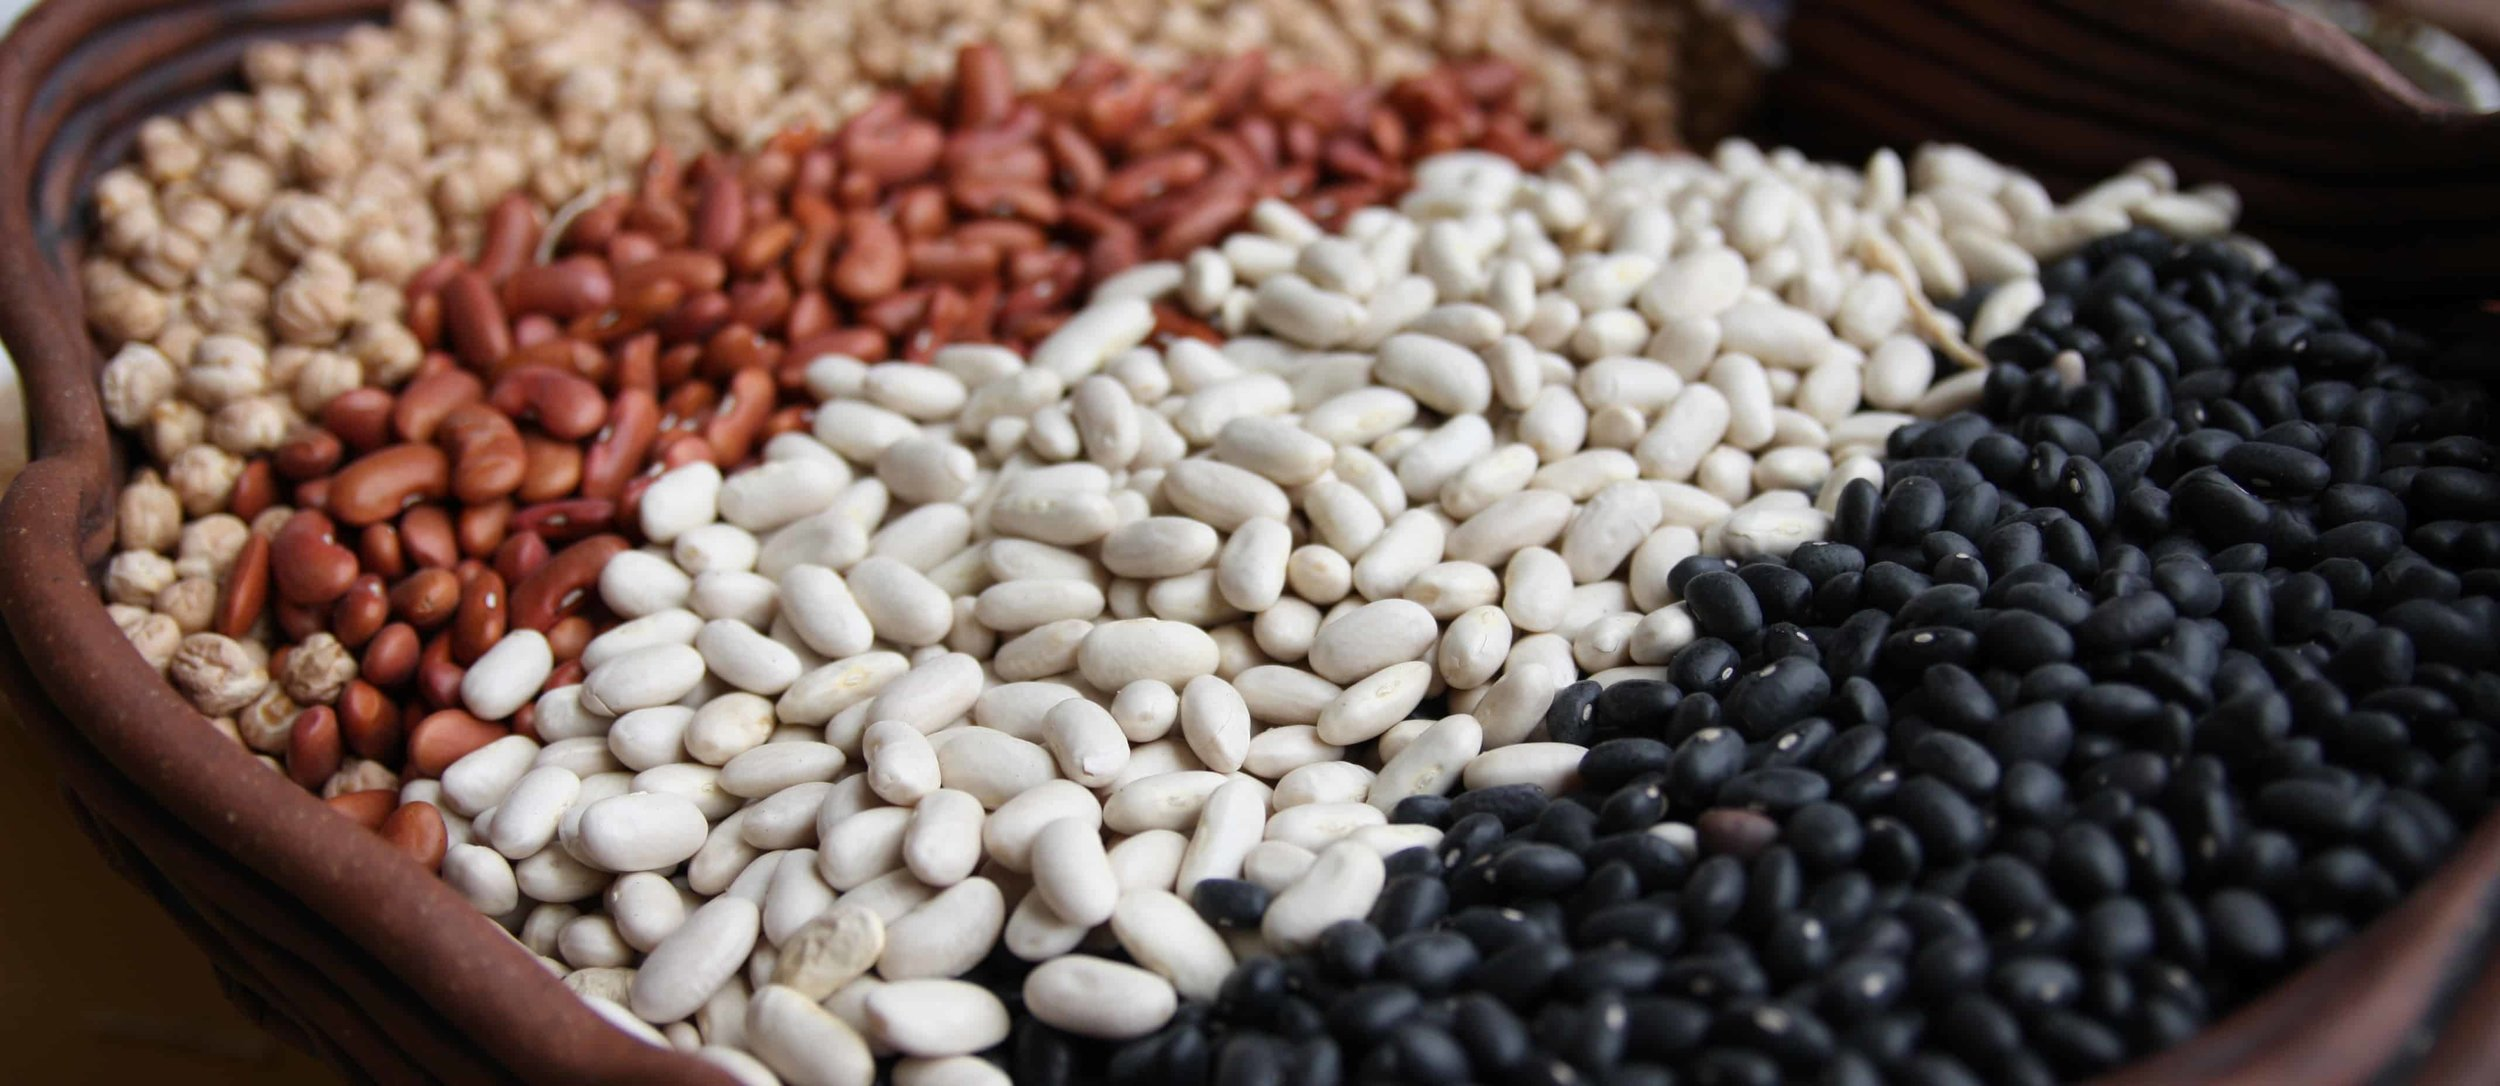 NF-Mar11-Why-You-Should-Eat-More-Beans.jpg